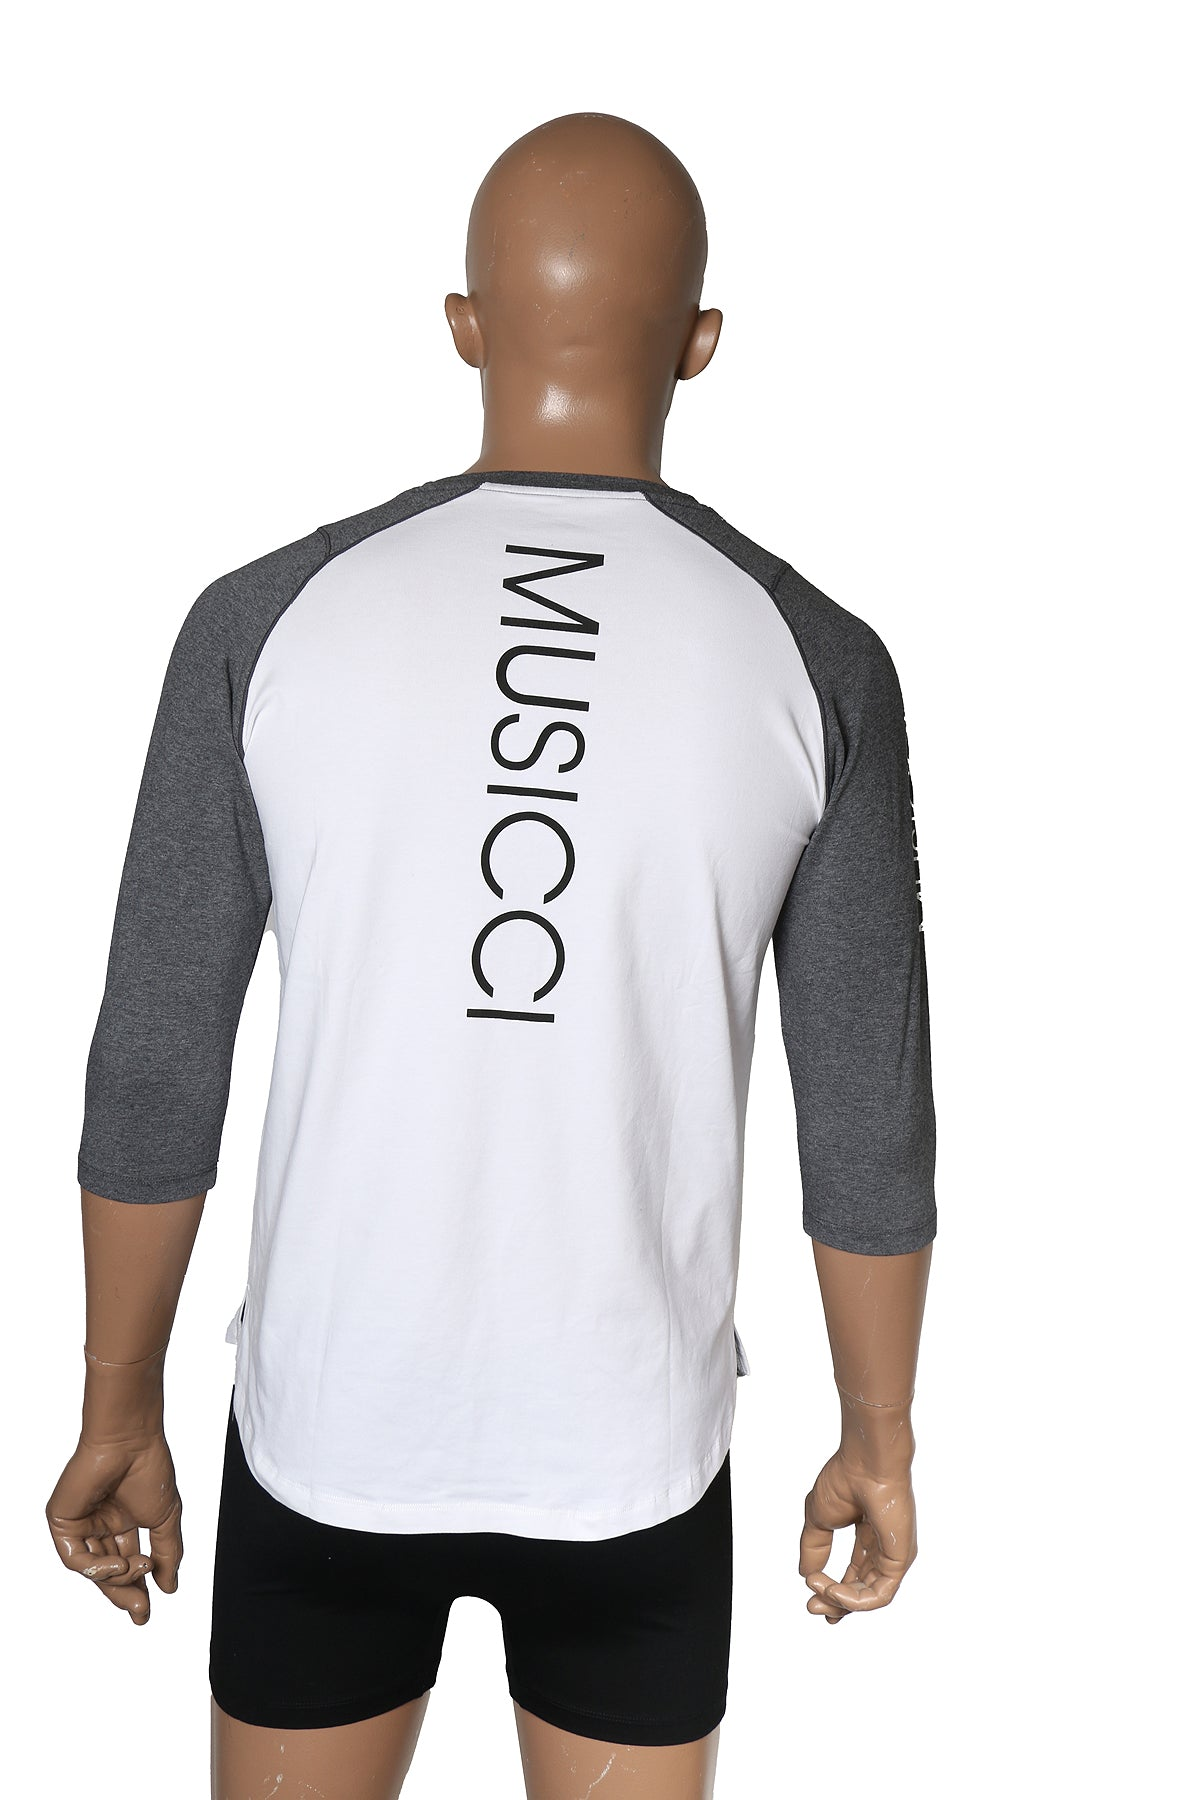 Musicci  graphic Tee II